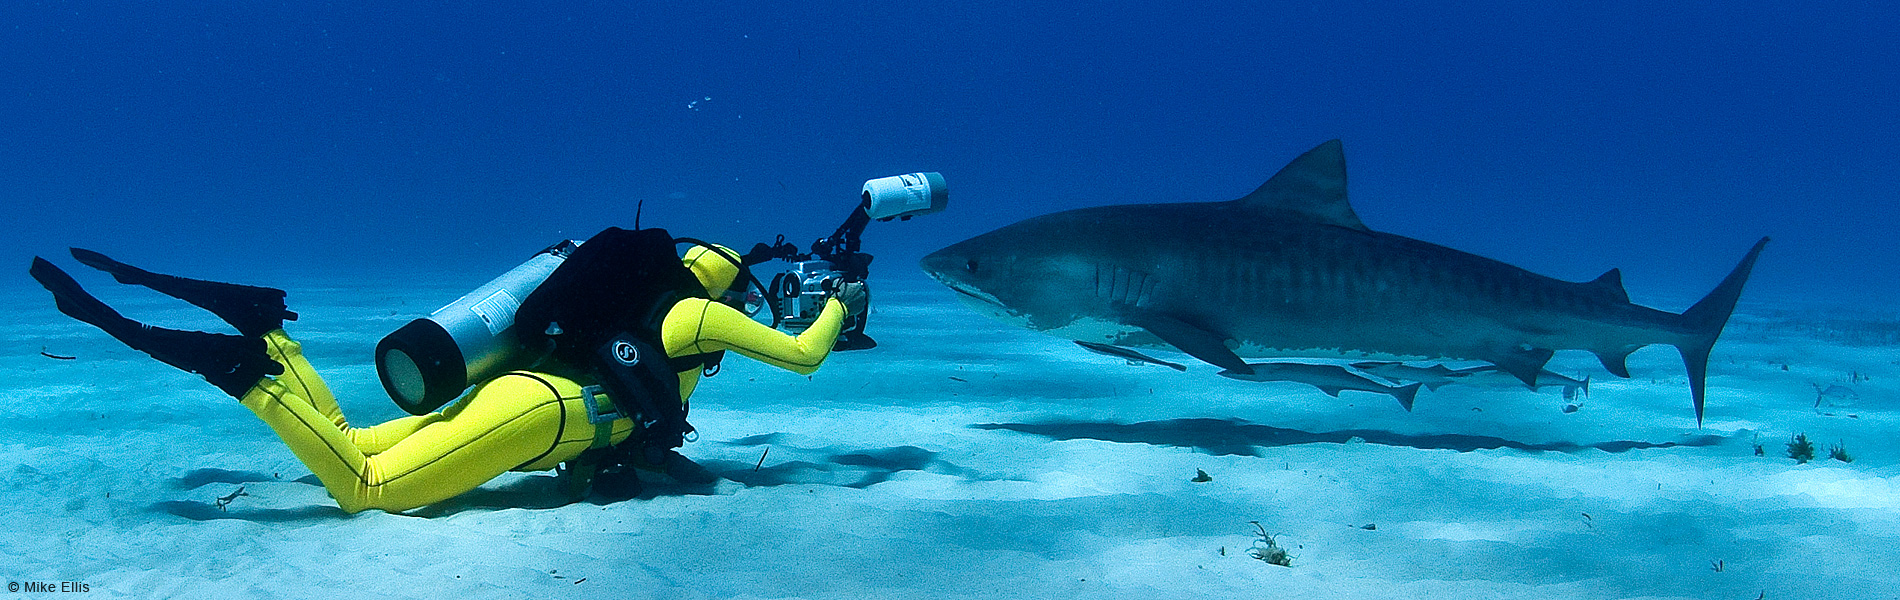 Lesley-Rochat-the-Shark-Conservationist1